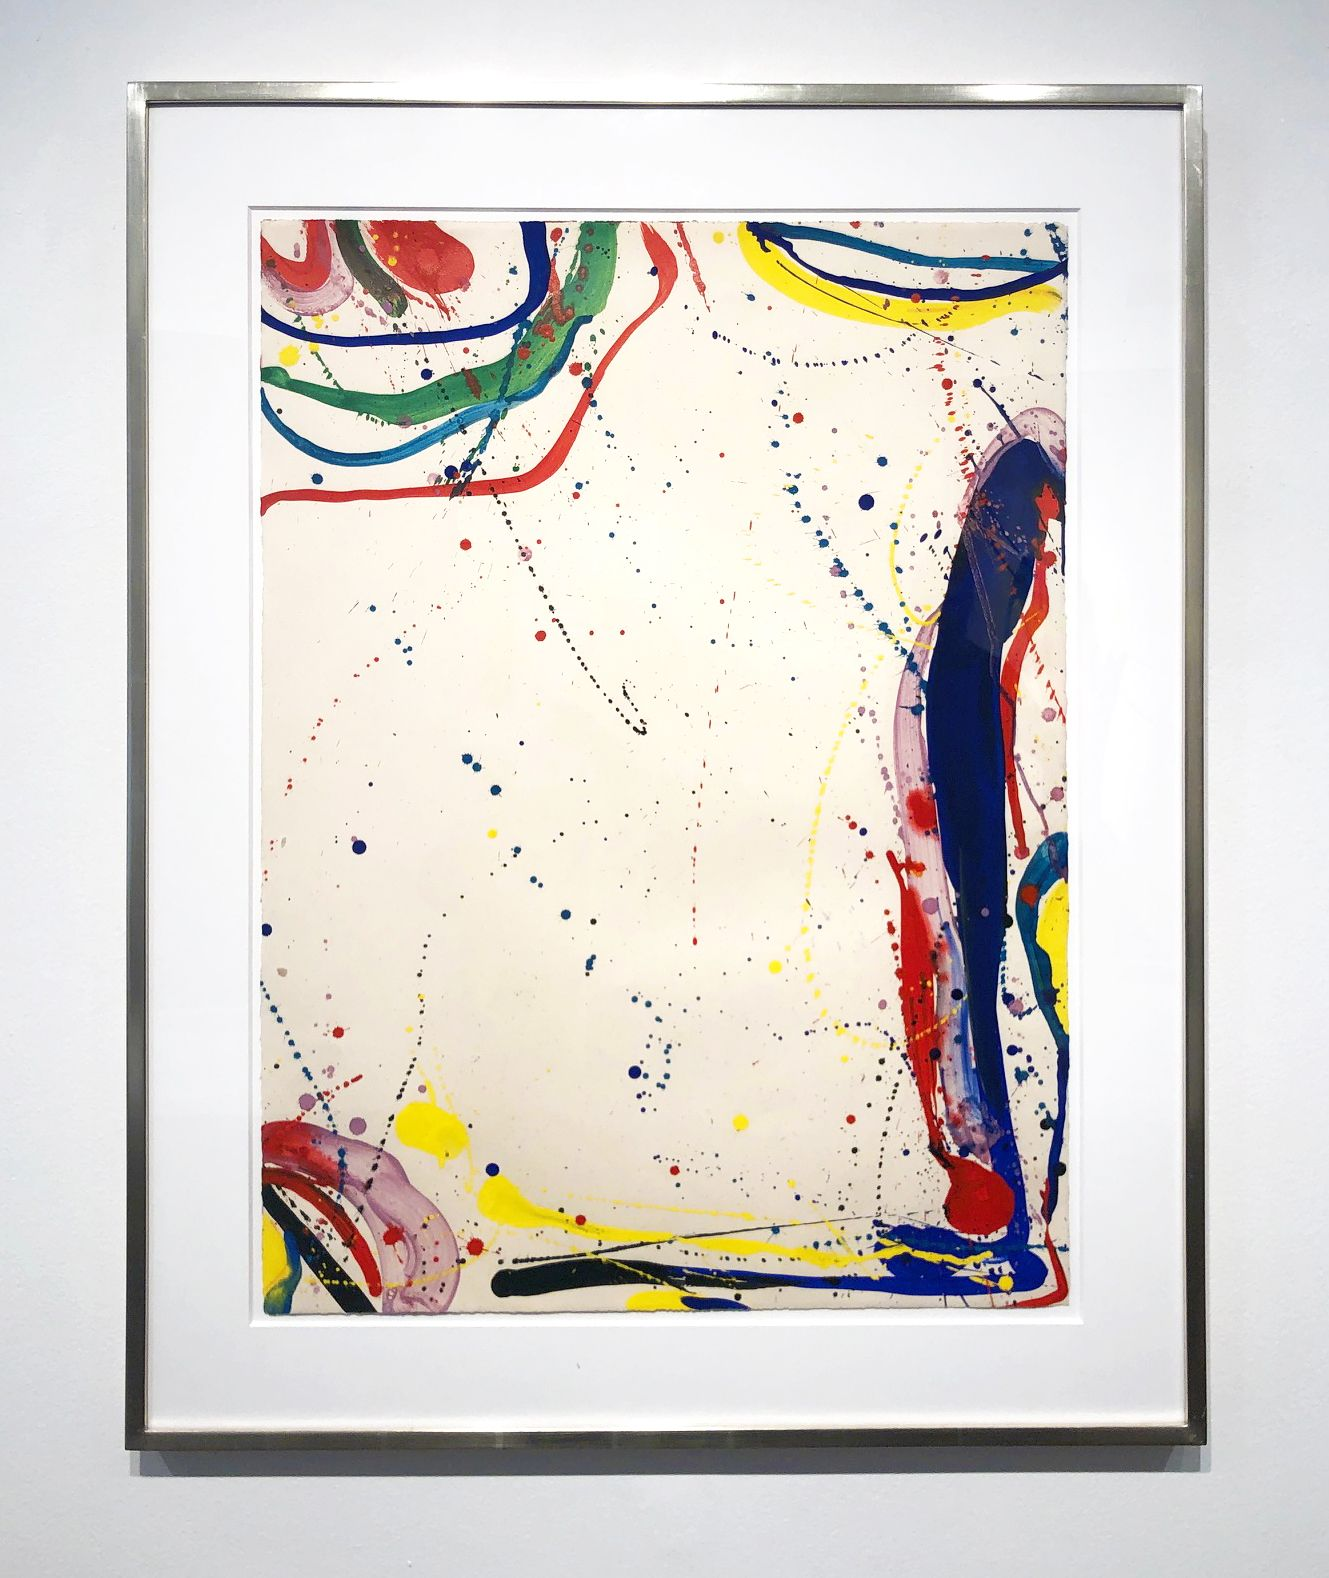 Sam Francis, Untitled, 1964